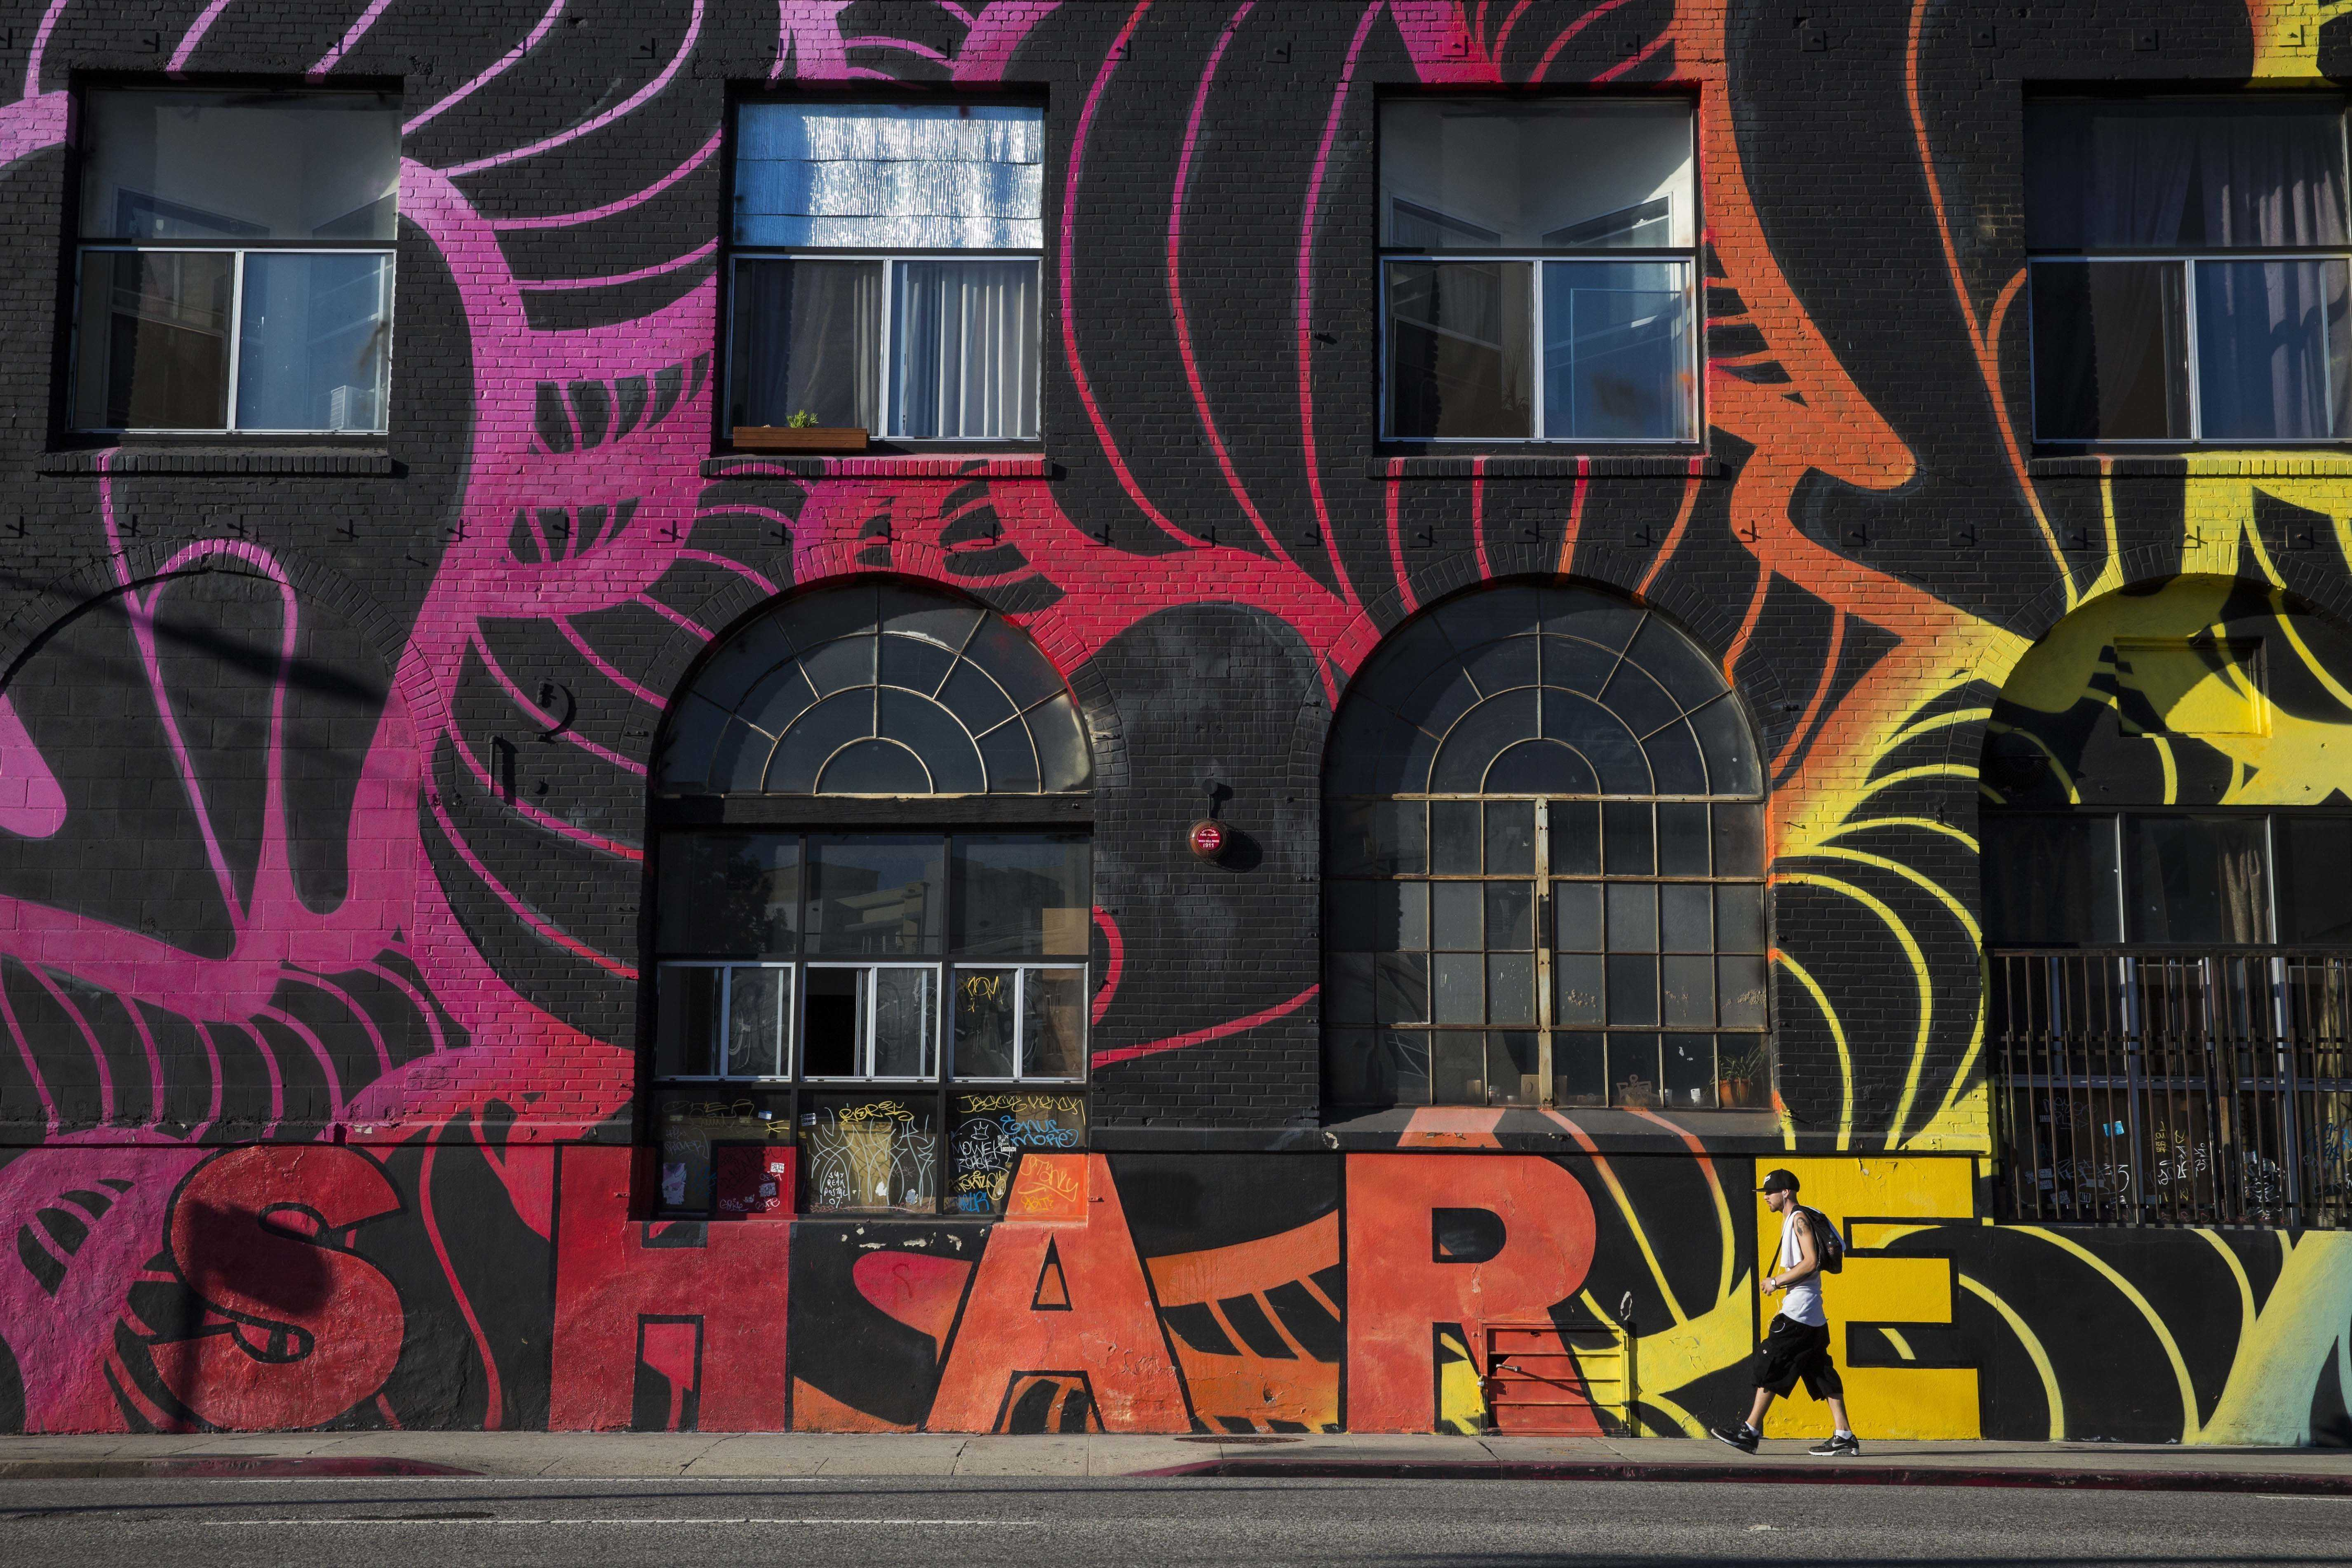 """Man walks past building covered in a rainbow mural that says, """"share"""" and features an abstract design"""